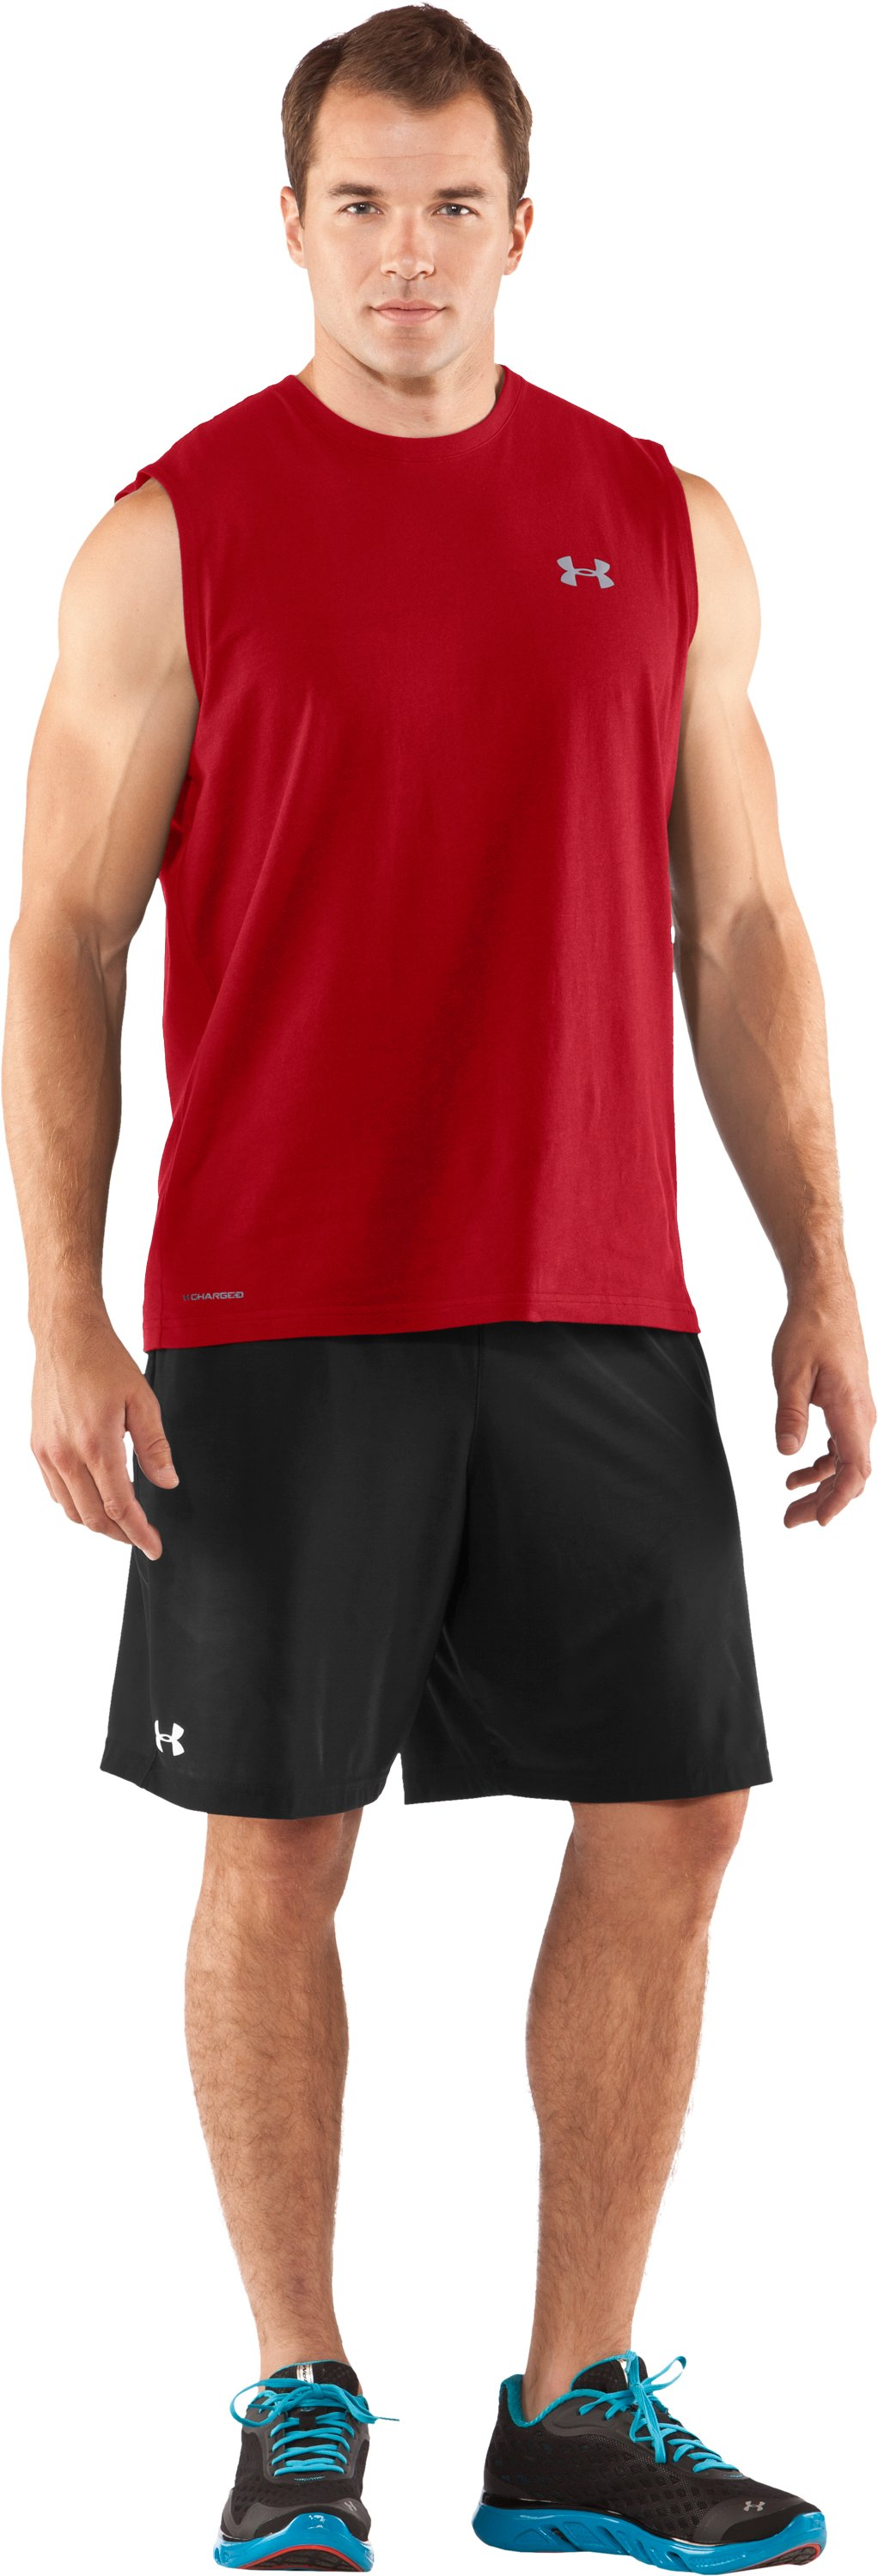 Men's Charged Cotton® Sleeveless T-shirt, Red, Front